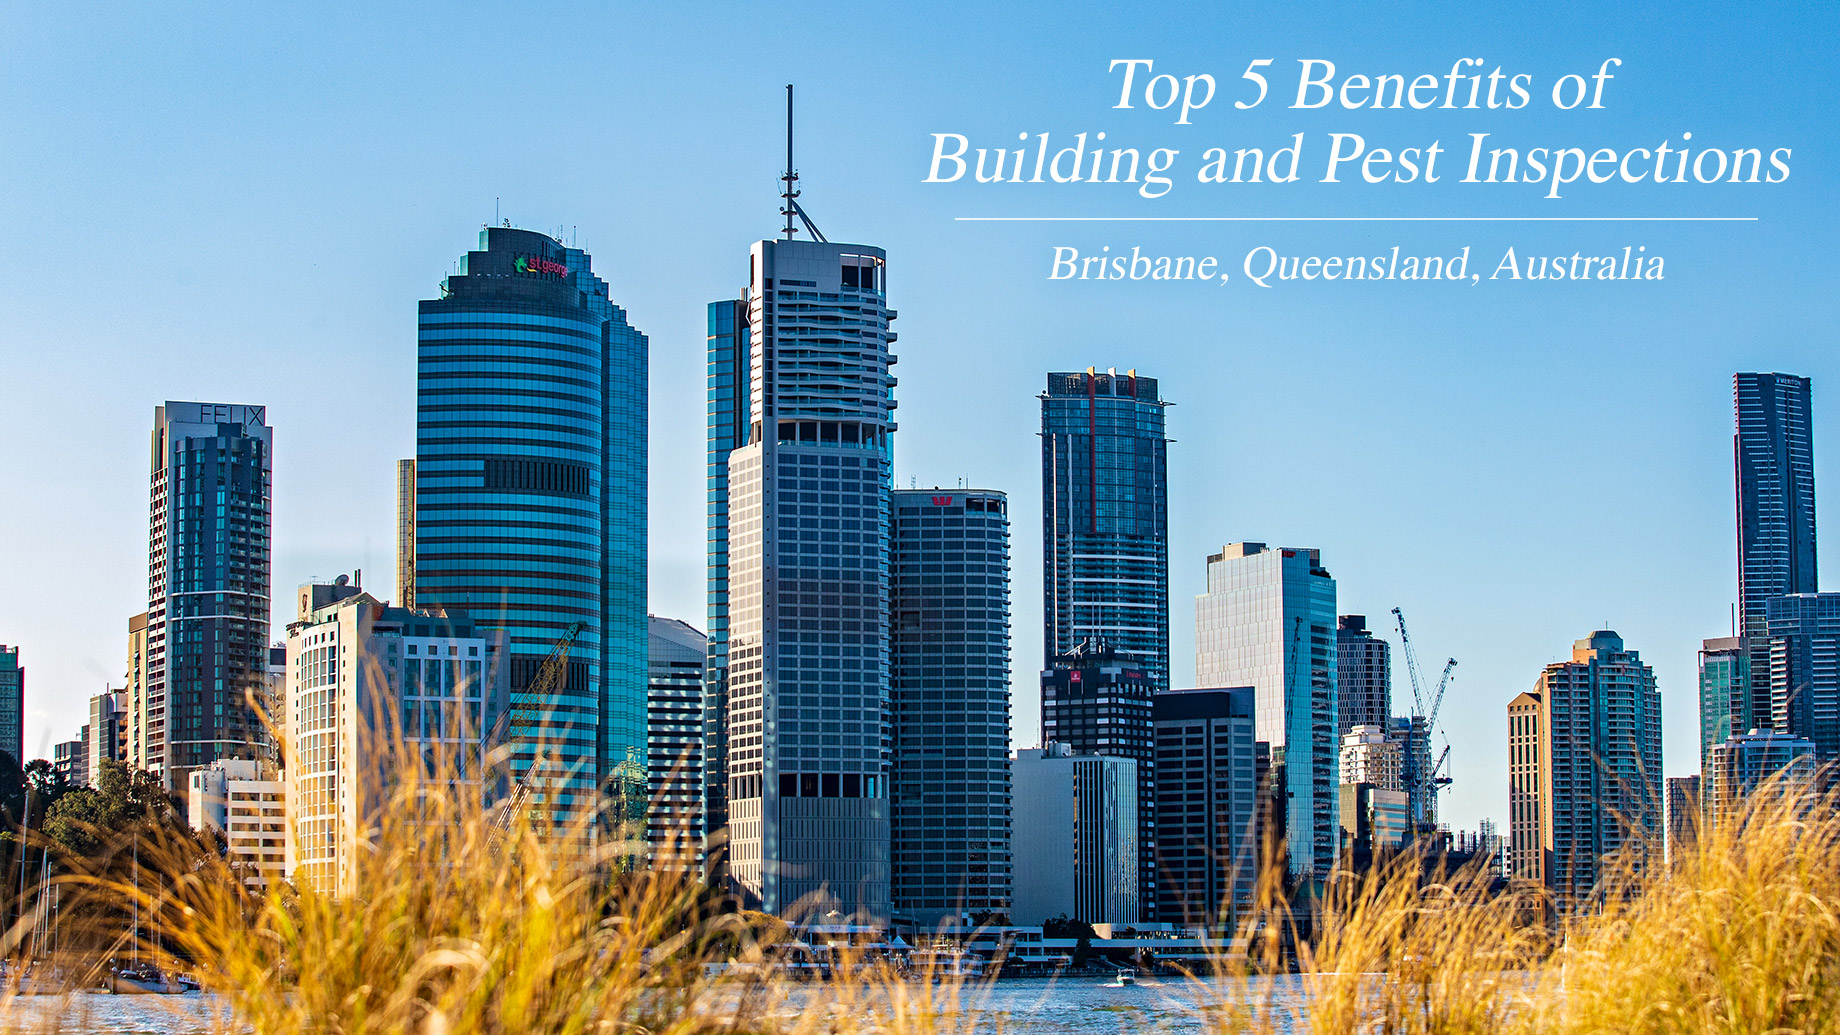 Top 5 Benefits of Building and Pest Inspections in Brisbane, Australia